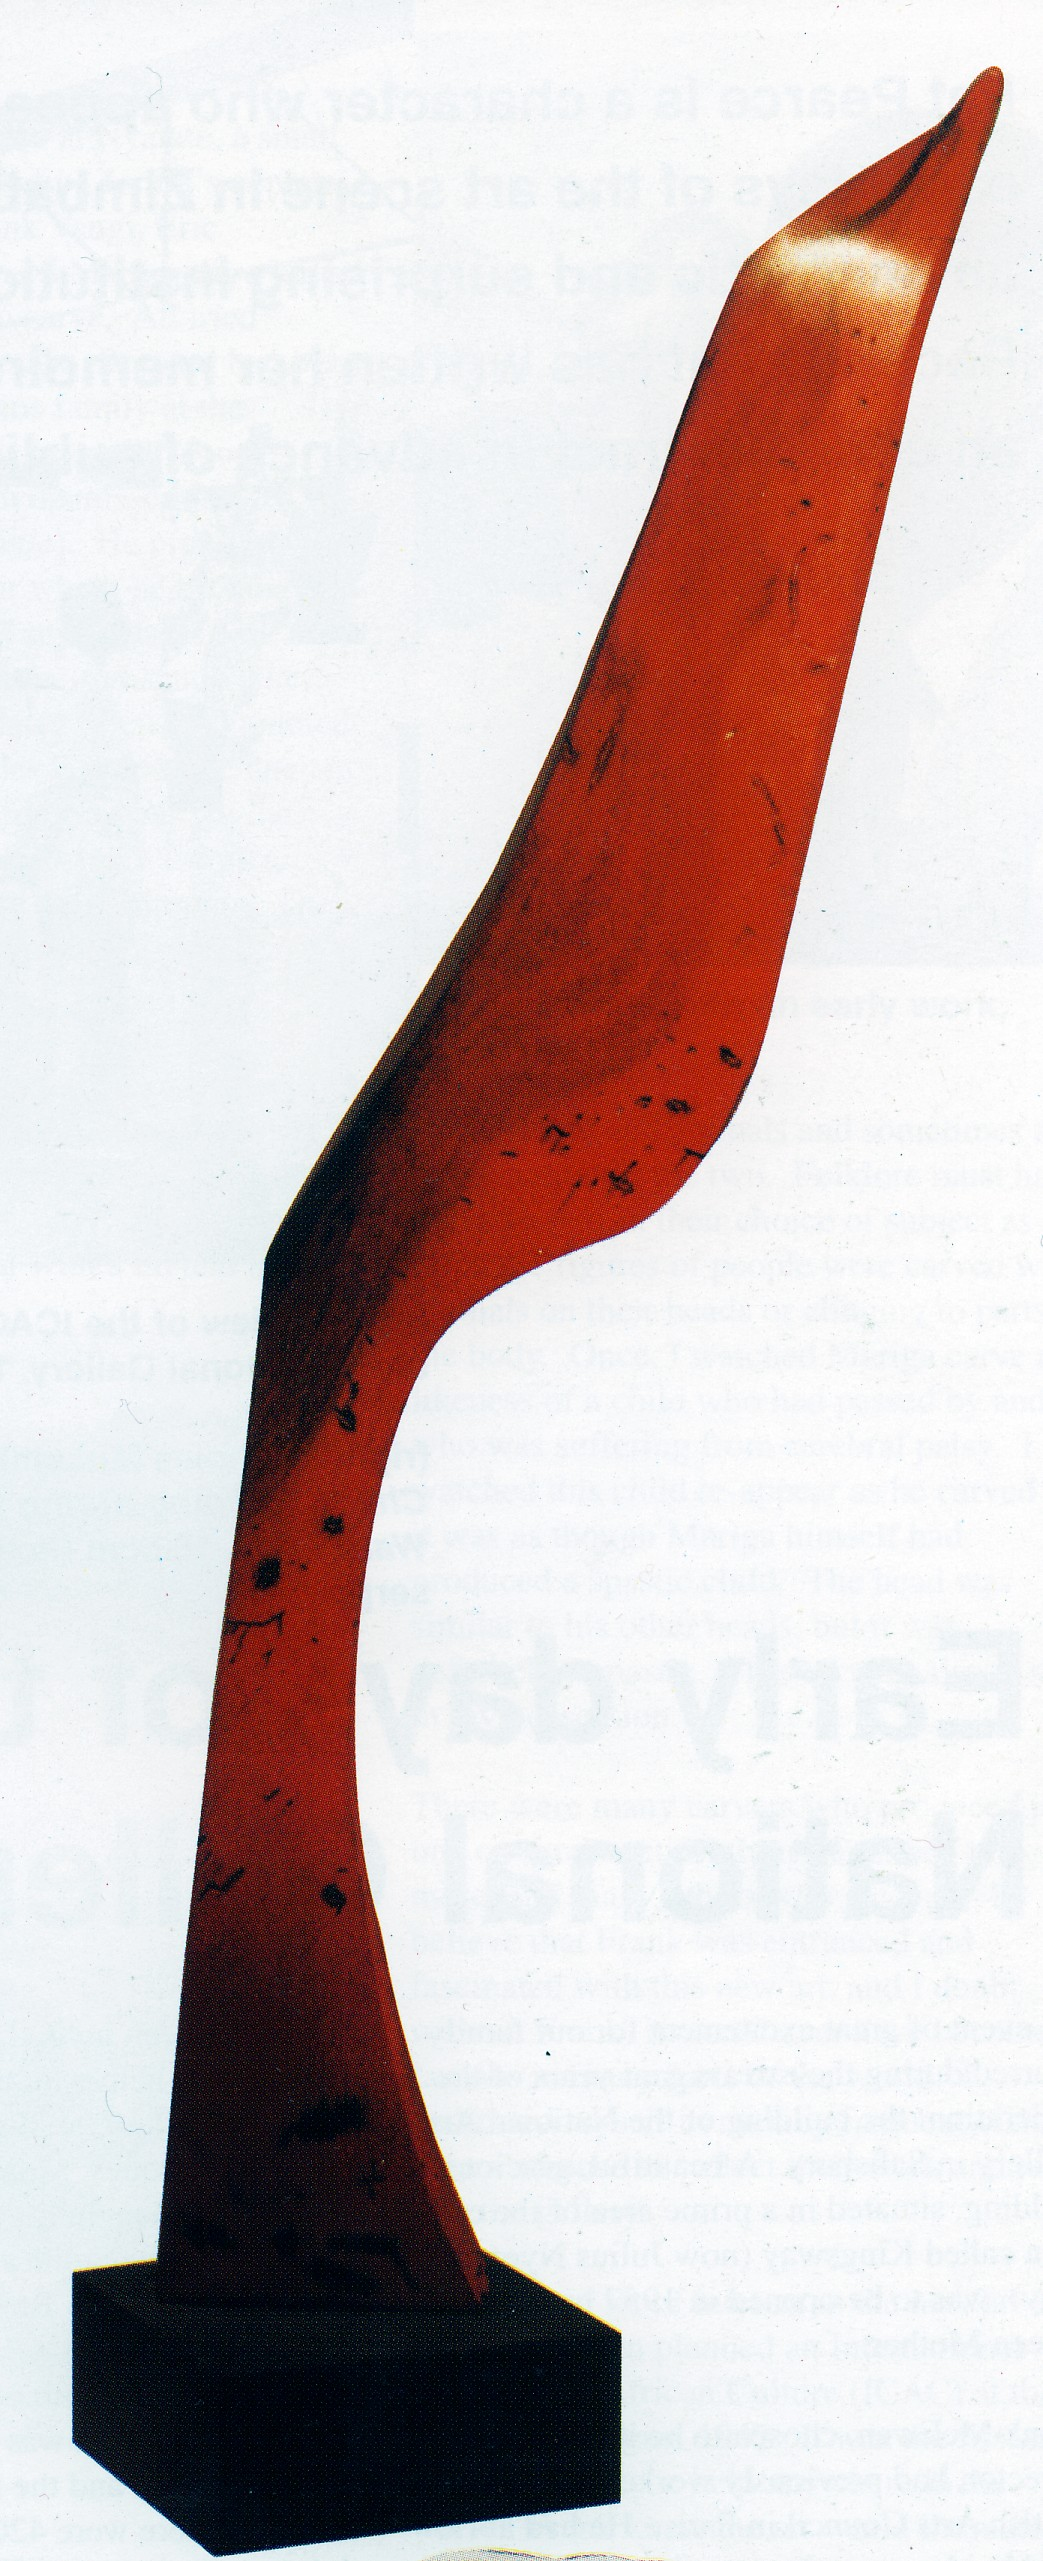 Flame bird, 1997. Wood and aluminium, 75 x 23 x 18 cm (Photo: B, published in Gallery)